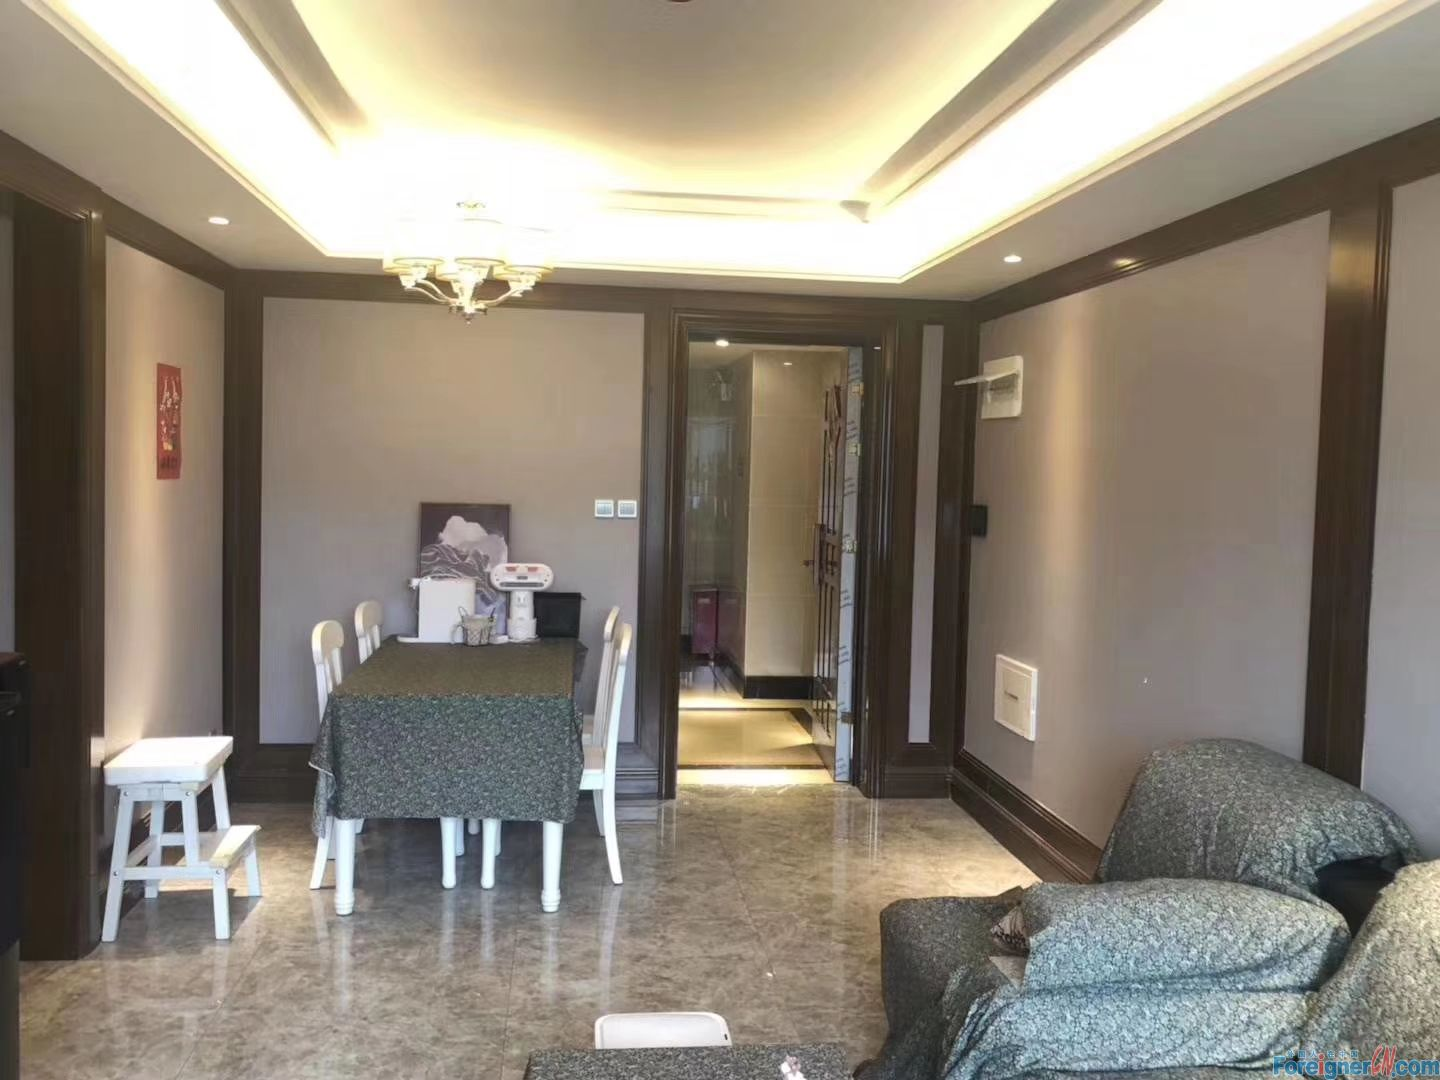 2 bed apartment for rent in Donggang ,Zhongshan.